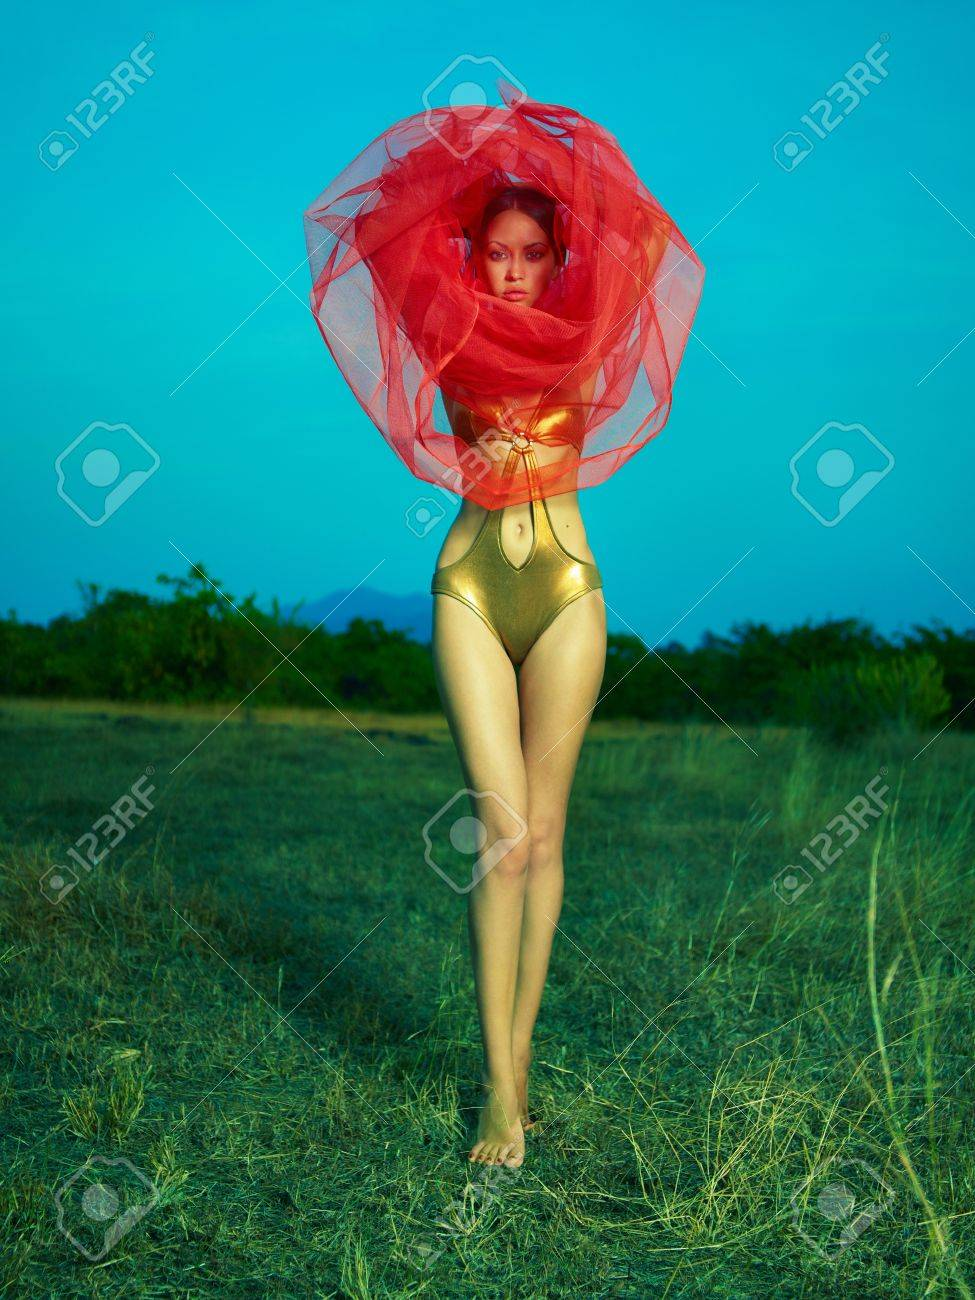 Sensual beautiful woman under the red veil on nature Stock Photo - 17625954